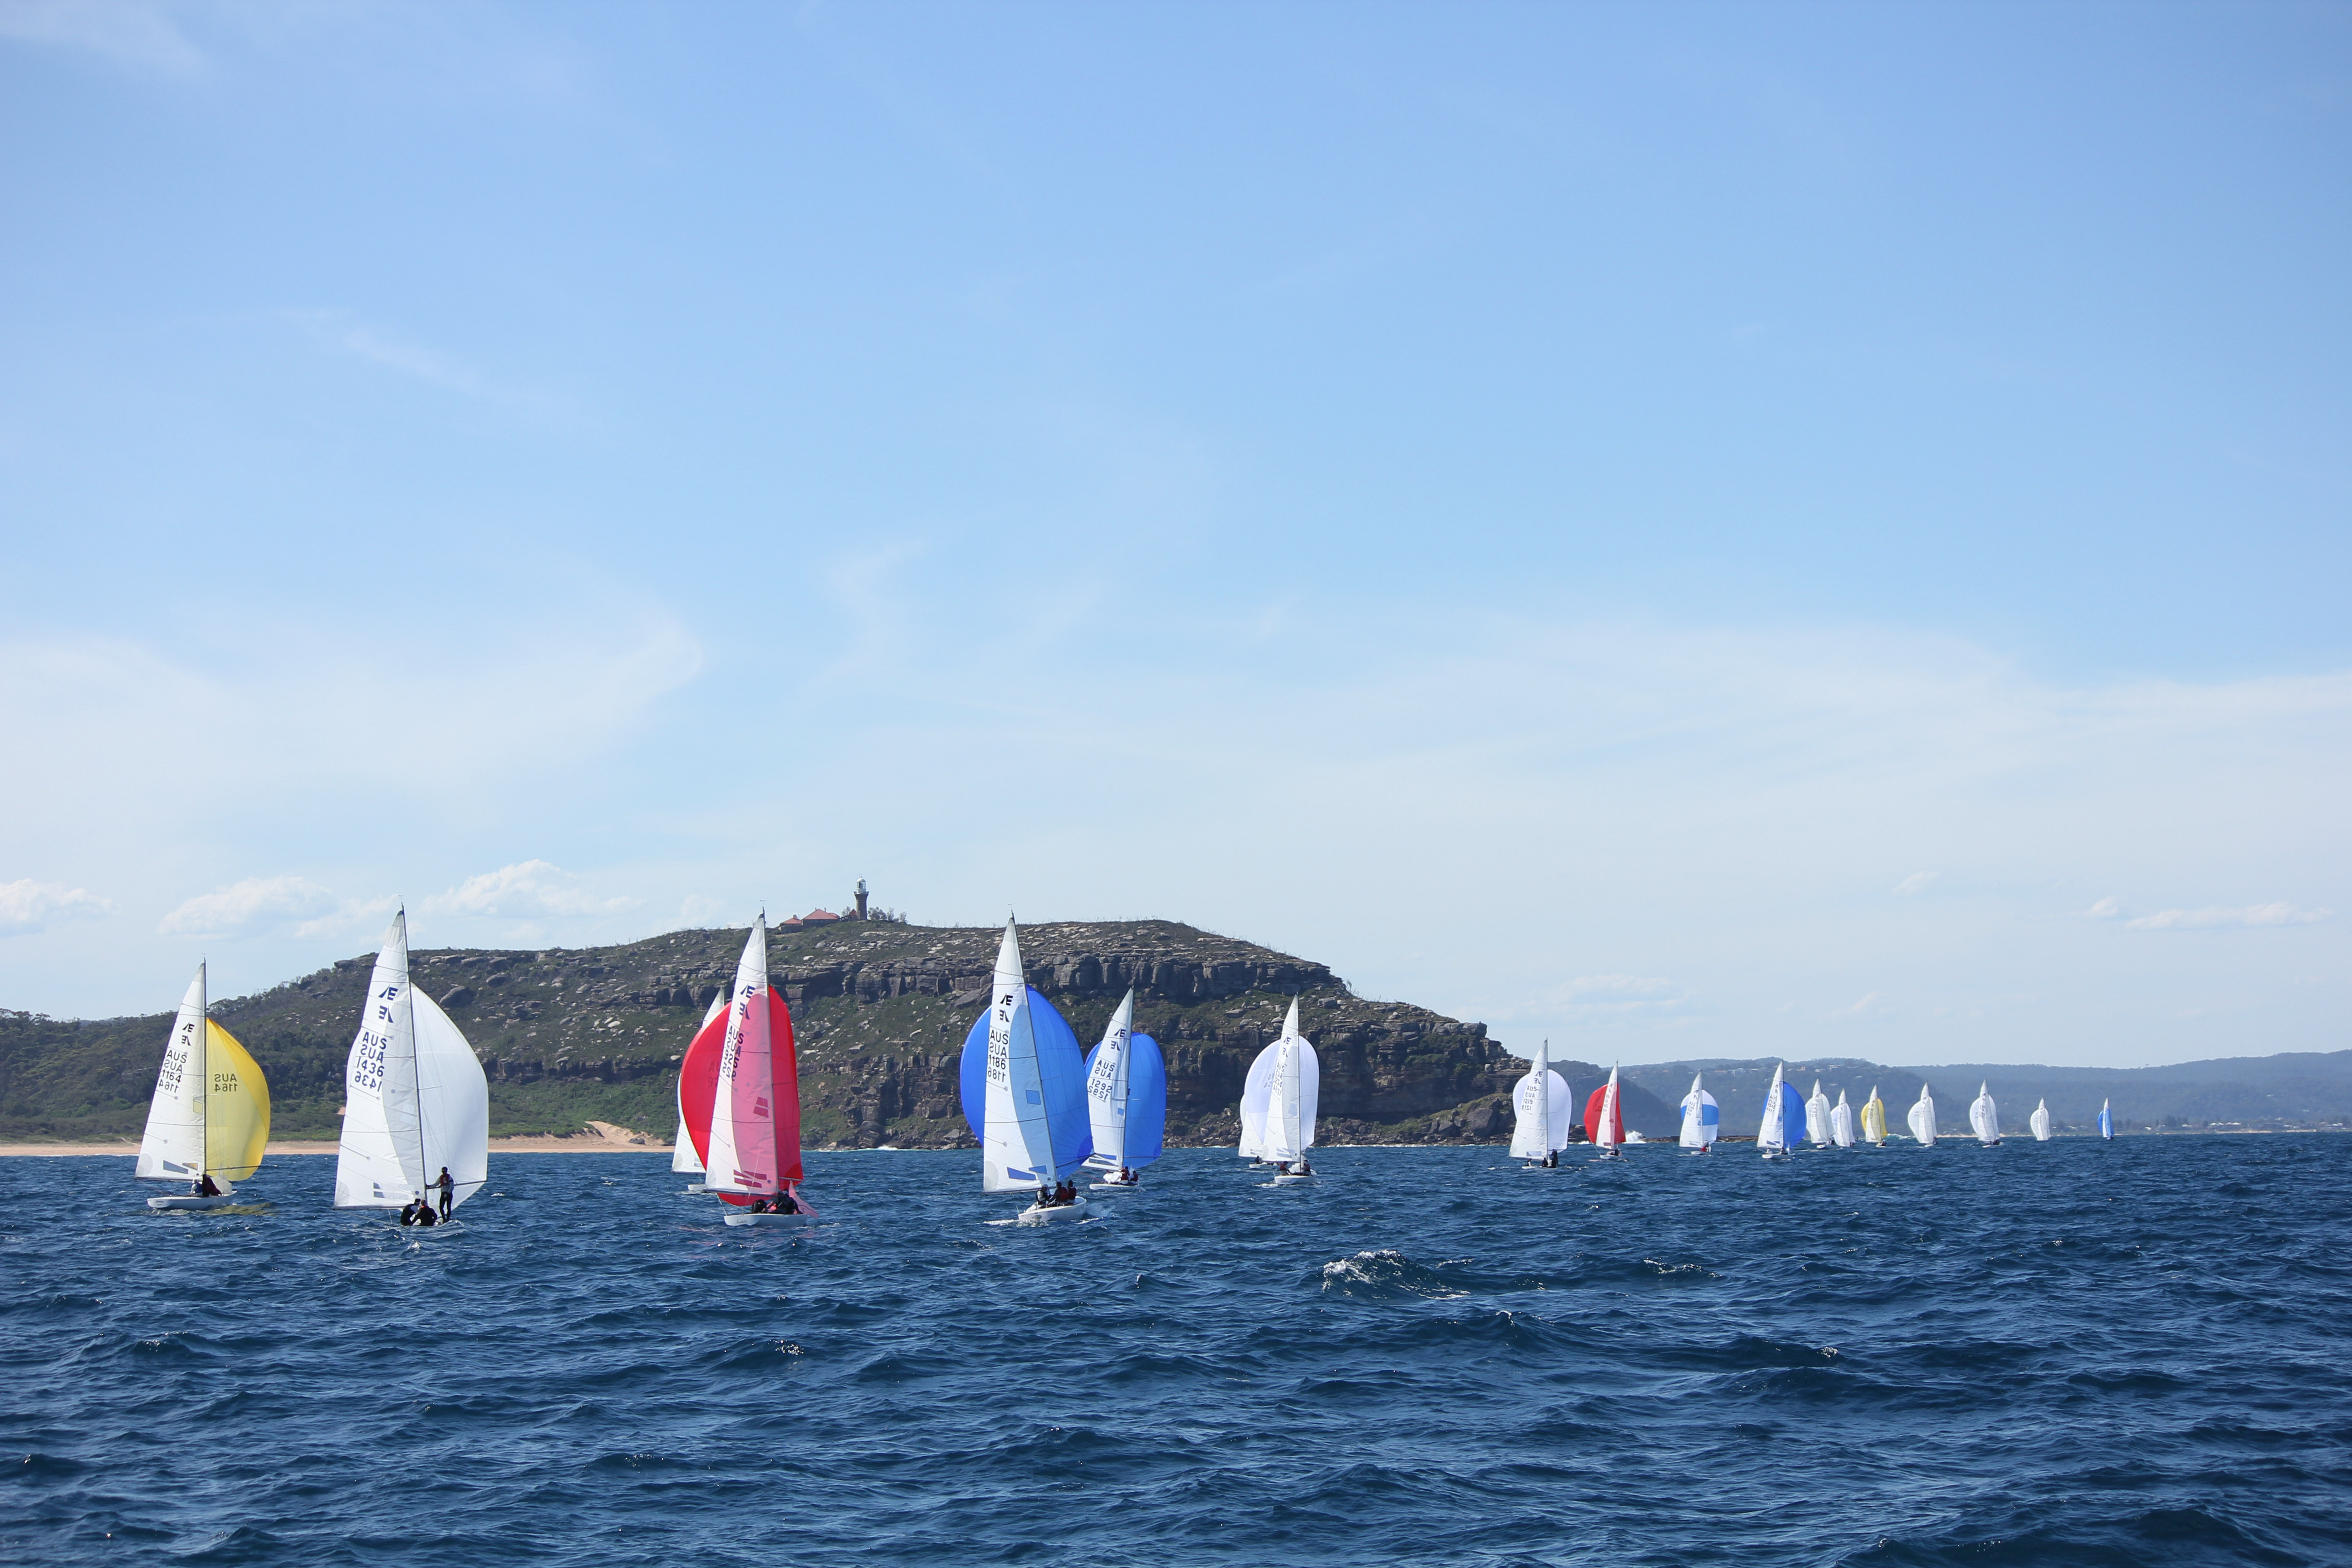 Etchells racing off the Palm Beach